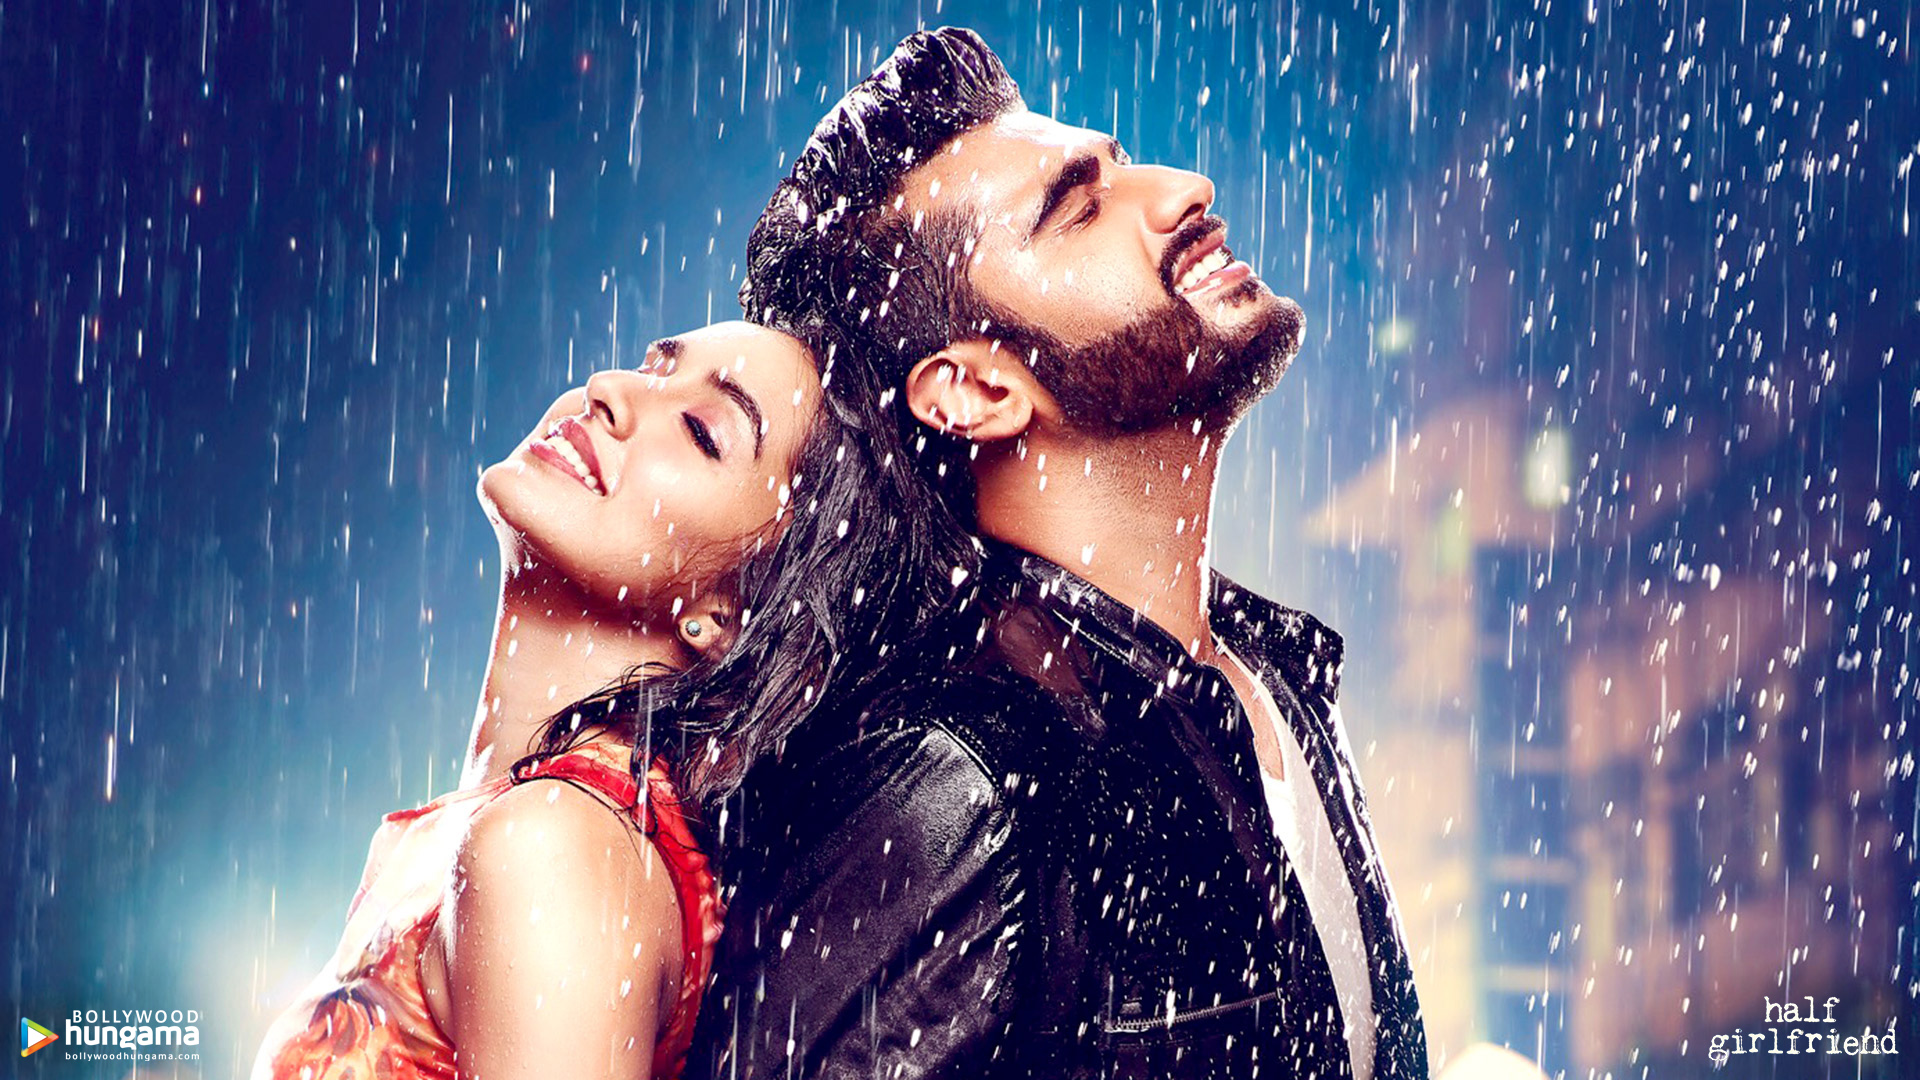 Love Wallpapers Songs : Half Girlfriend 2017 Wallpapers half-girlfriend-17 ...